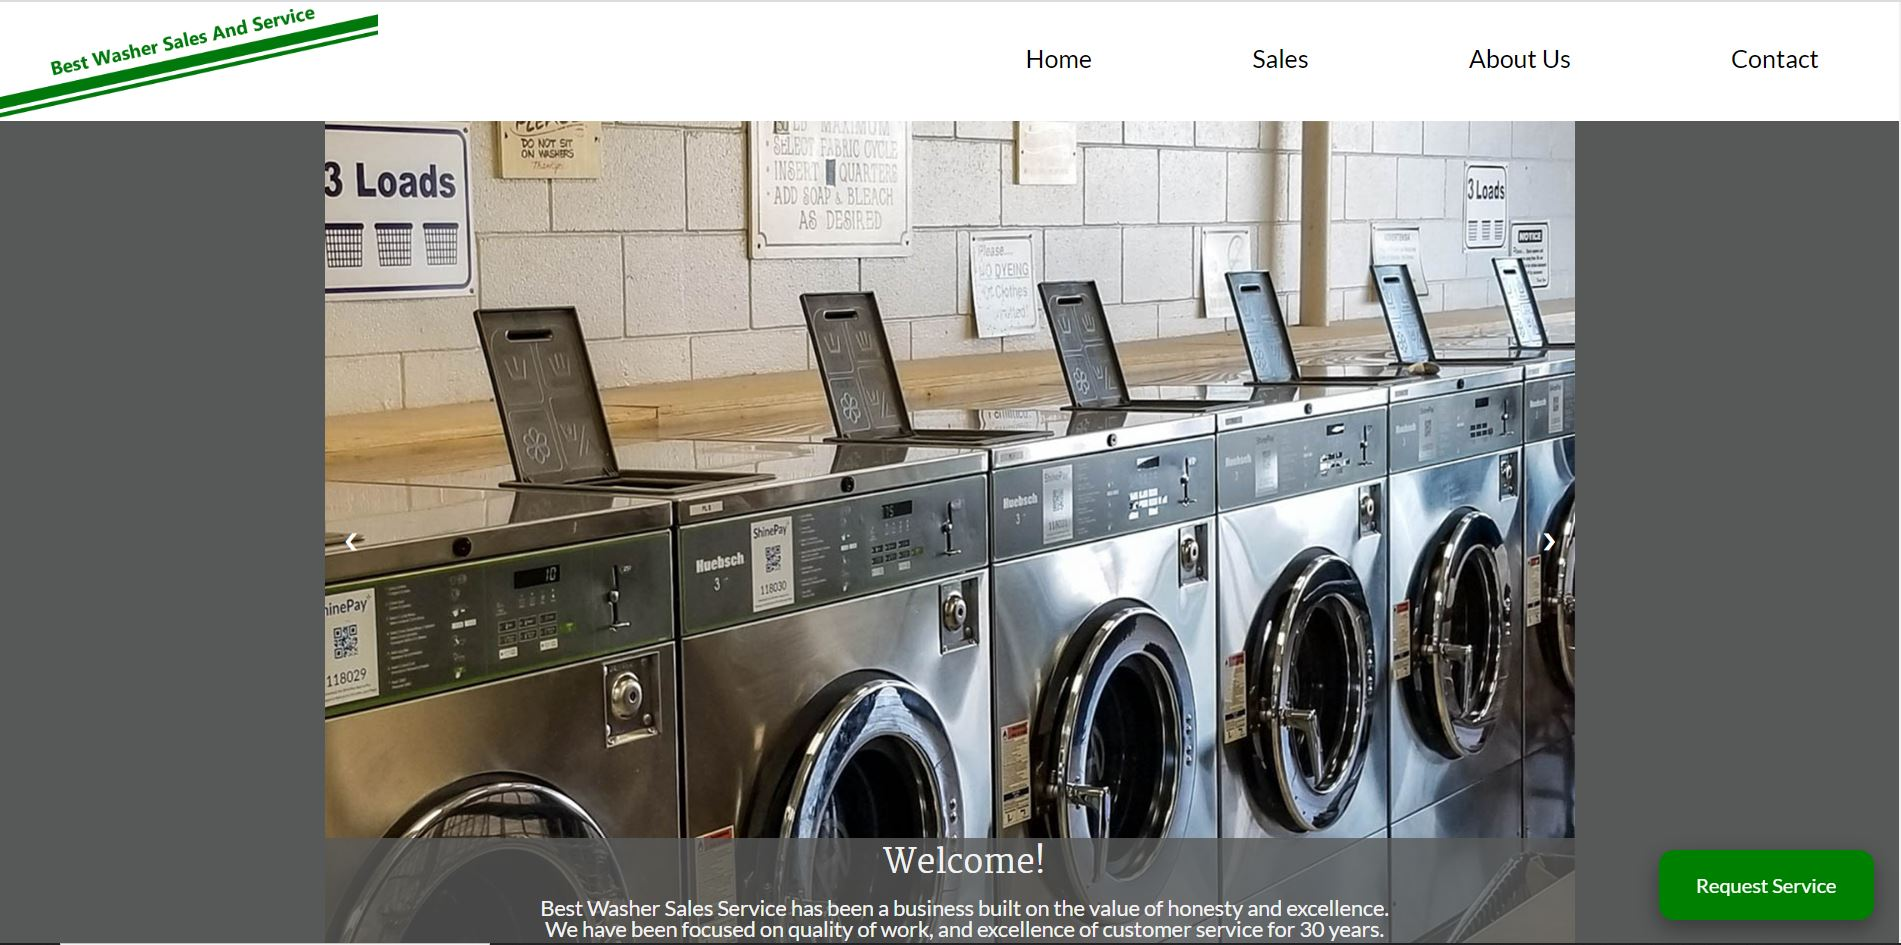 Best Washer Sales and Service Website